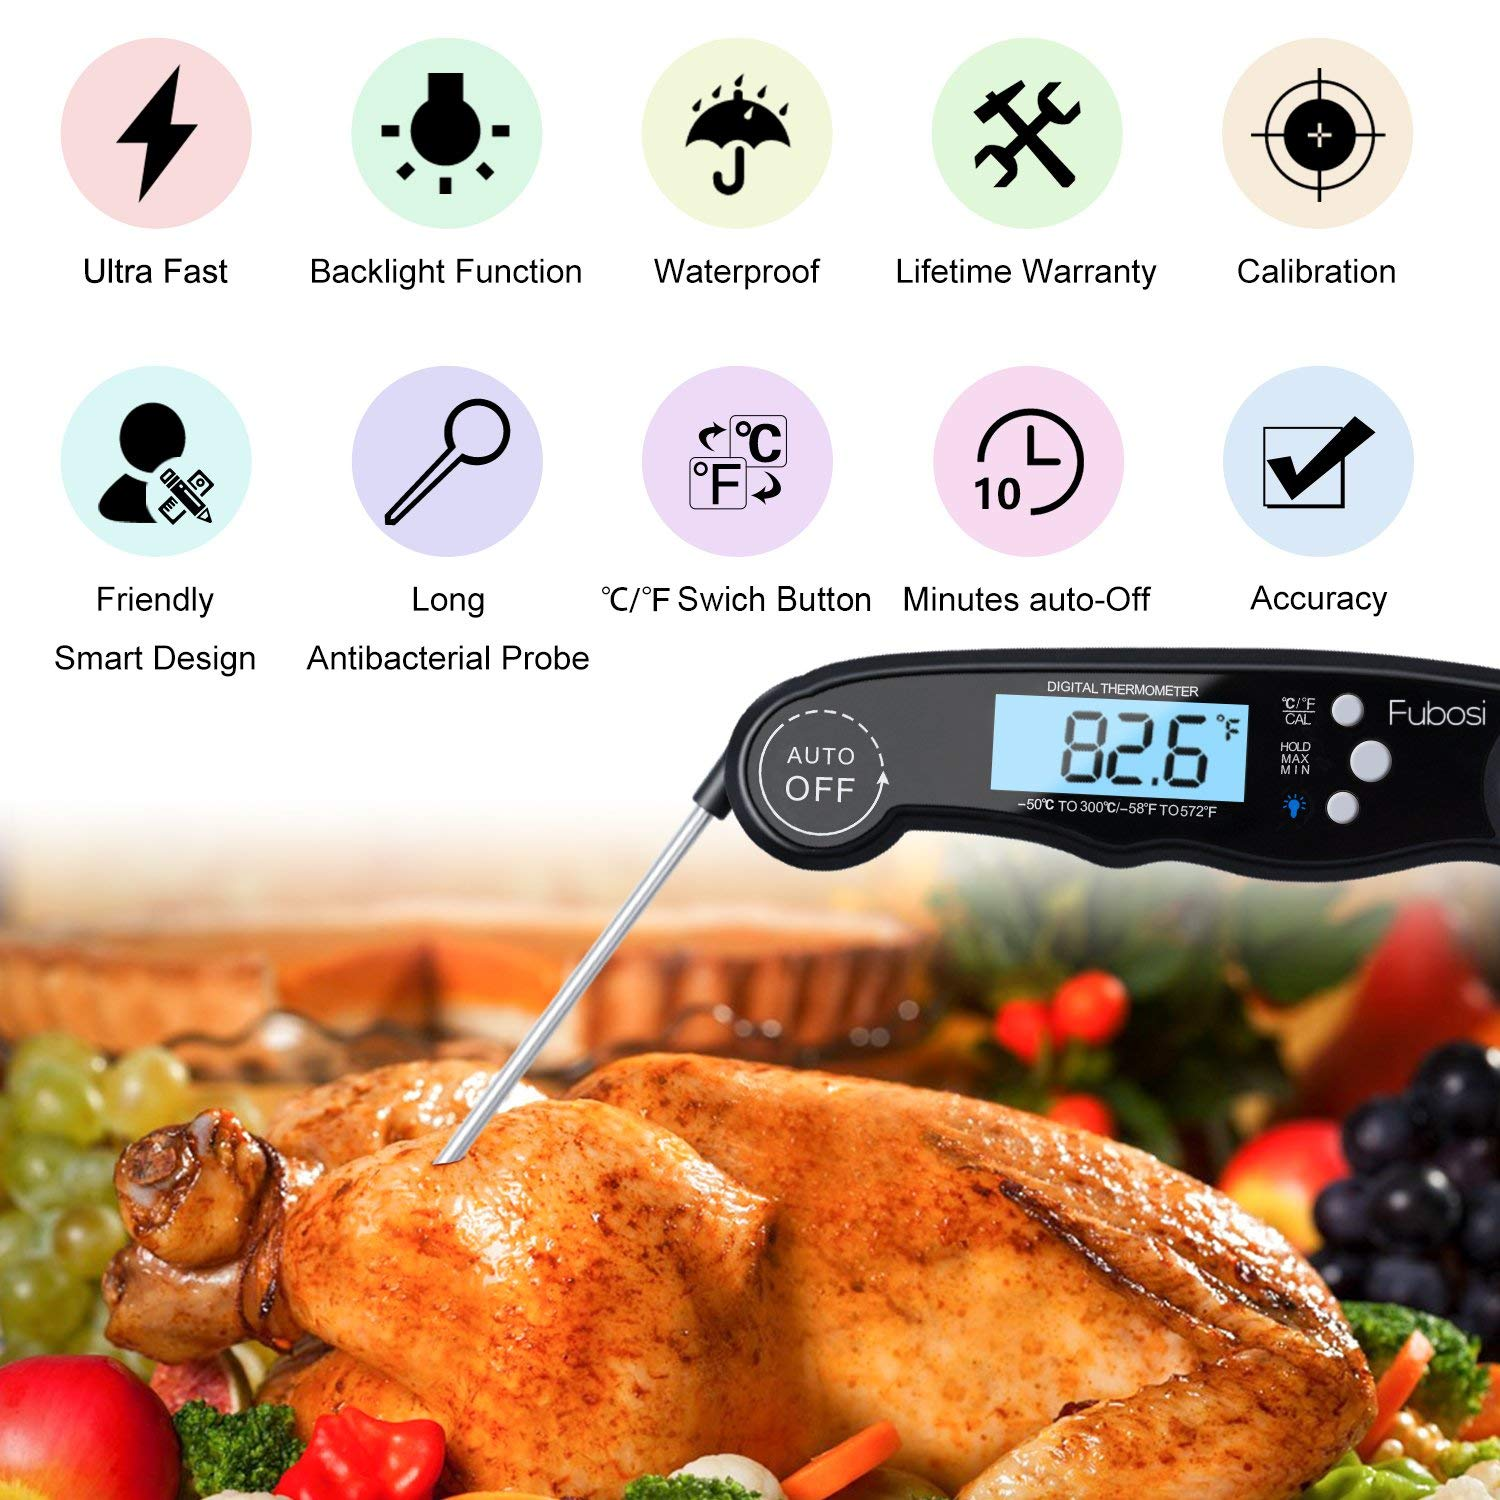 Meat Thermometer - Fubosi Digital Meat Thermometer Instant Read Food  Thermometer with Calibration and Backlight Functions, Digital Cooking  Thermometer